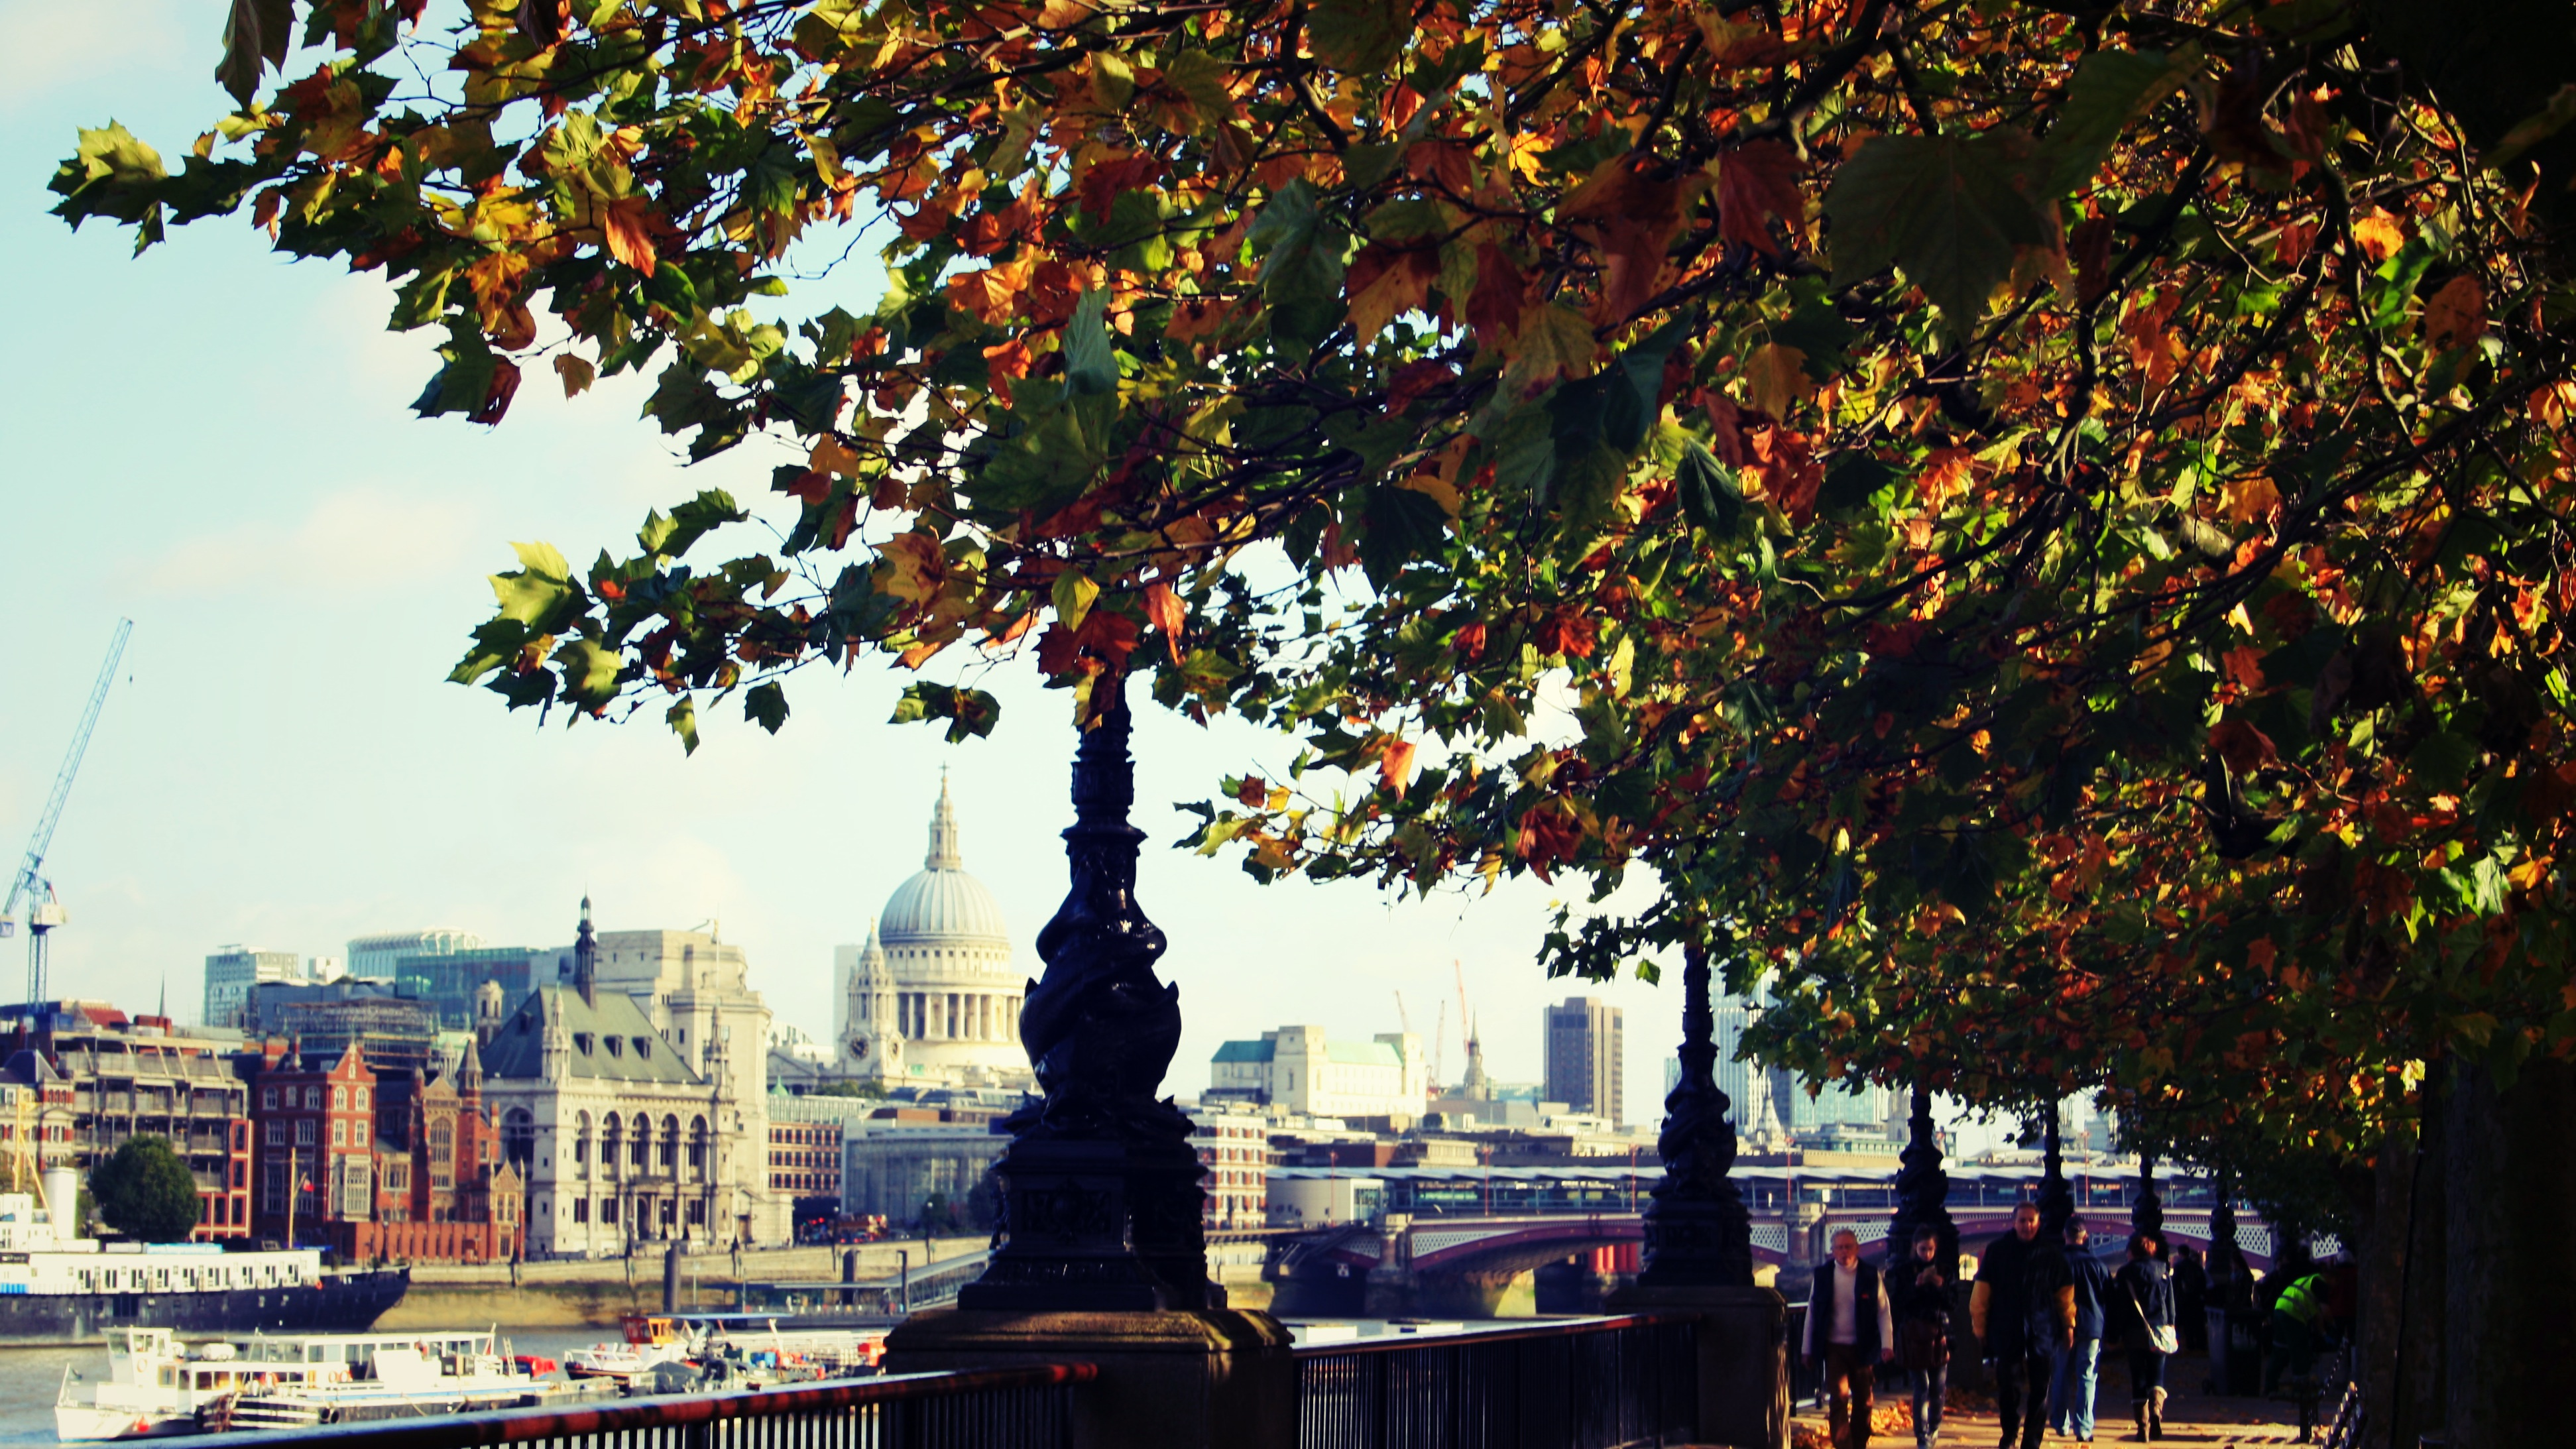 southbank automne